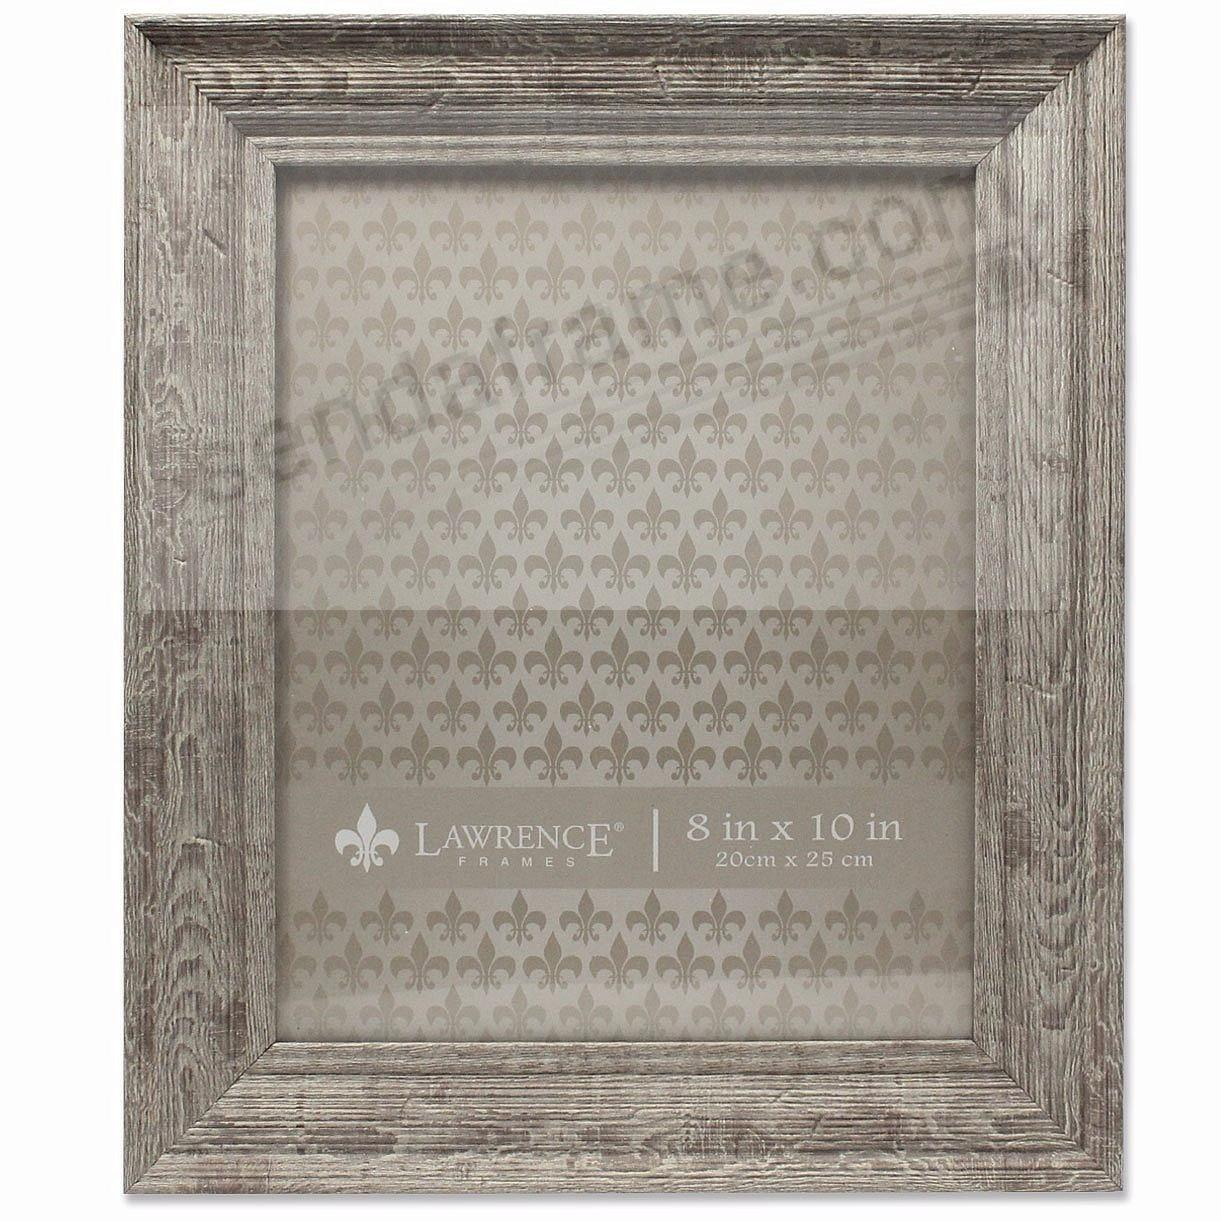 Weathered Harvest-Brown Barnwood 8x10 Frame by Lawrence®